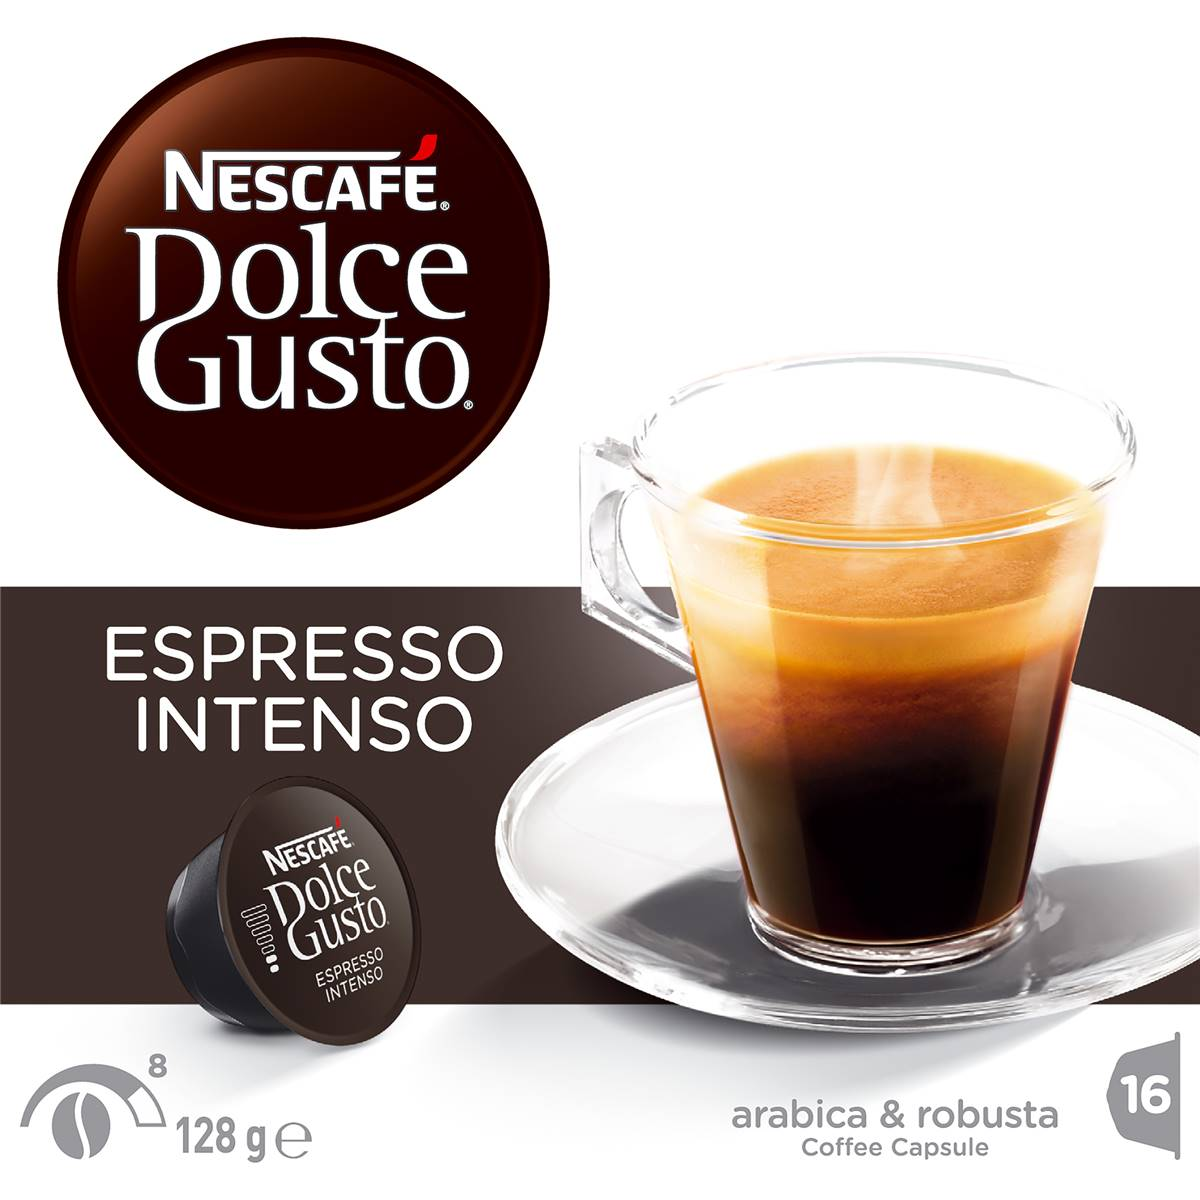 nescafe dolce gusto coffee capsules espresso intenso compare club. Black Bedroom Furniture Sets. Home Design Ideas